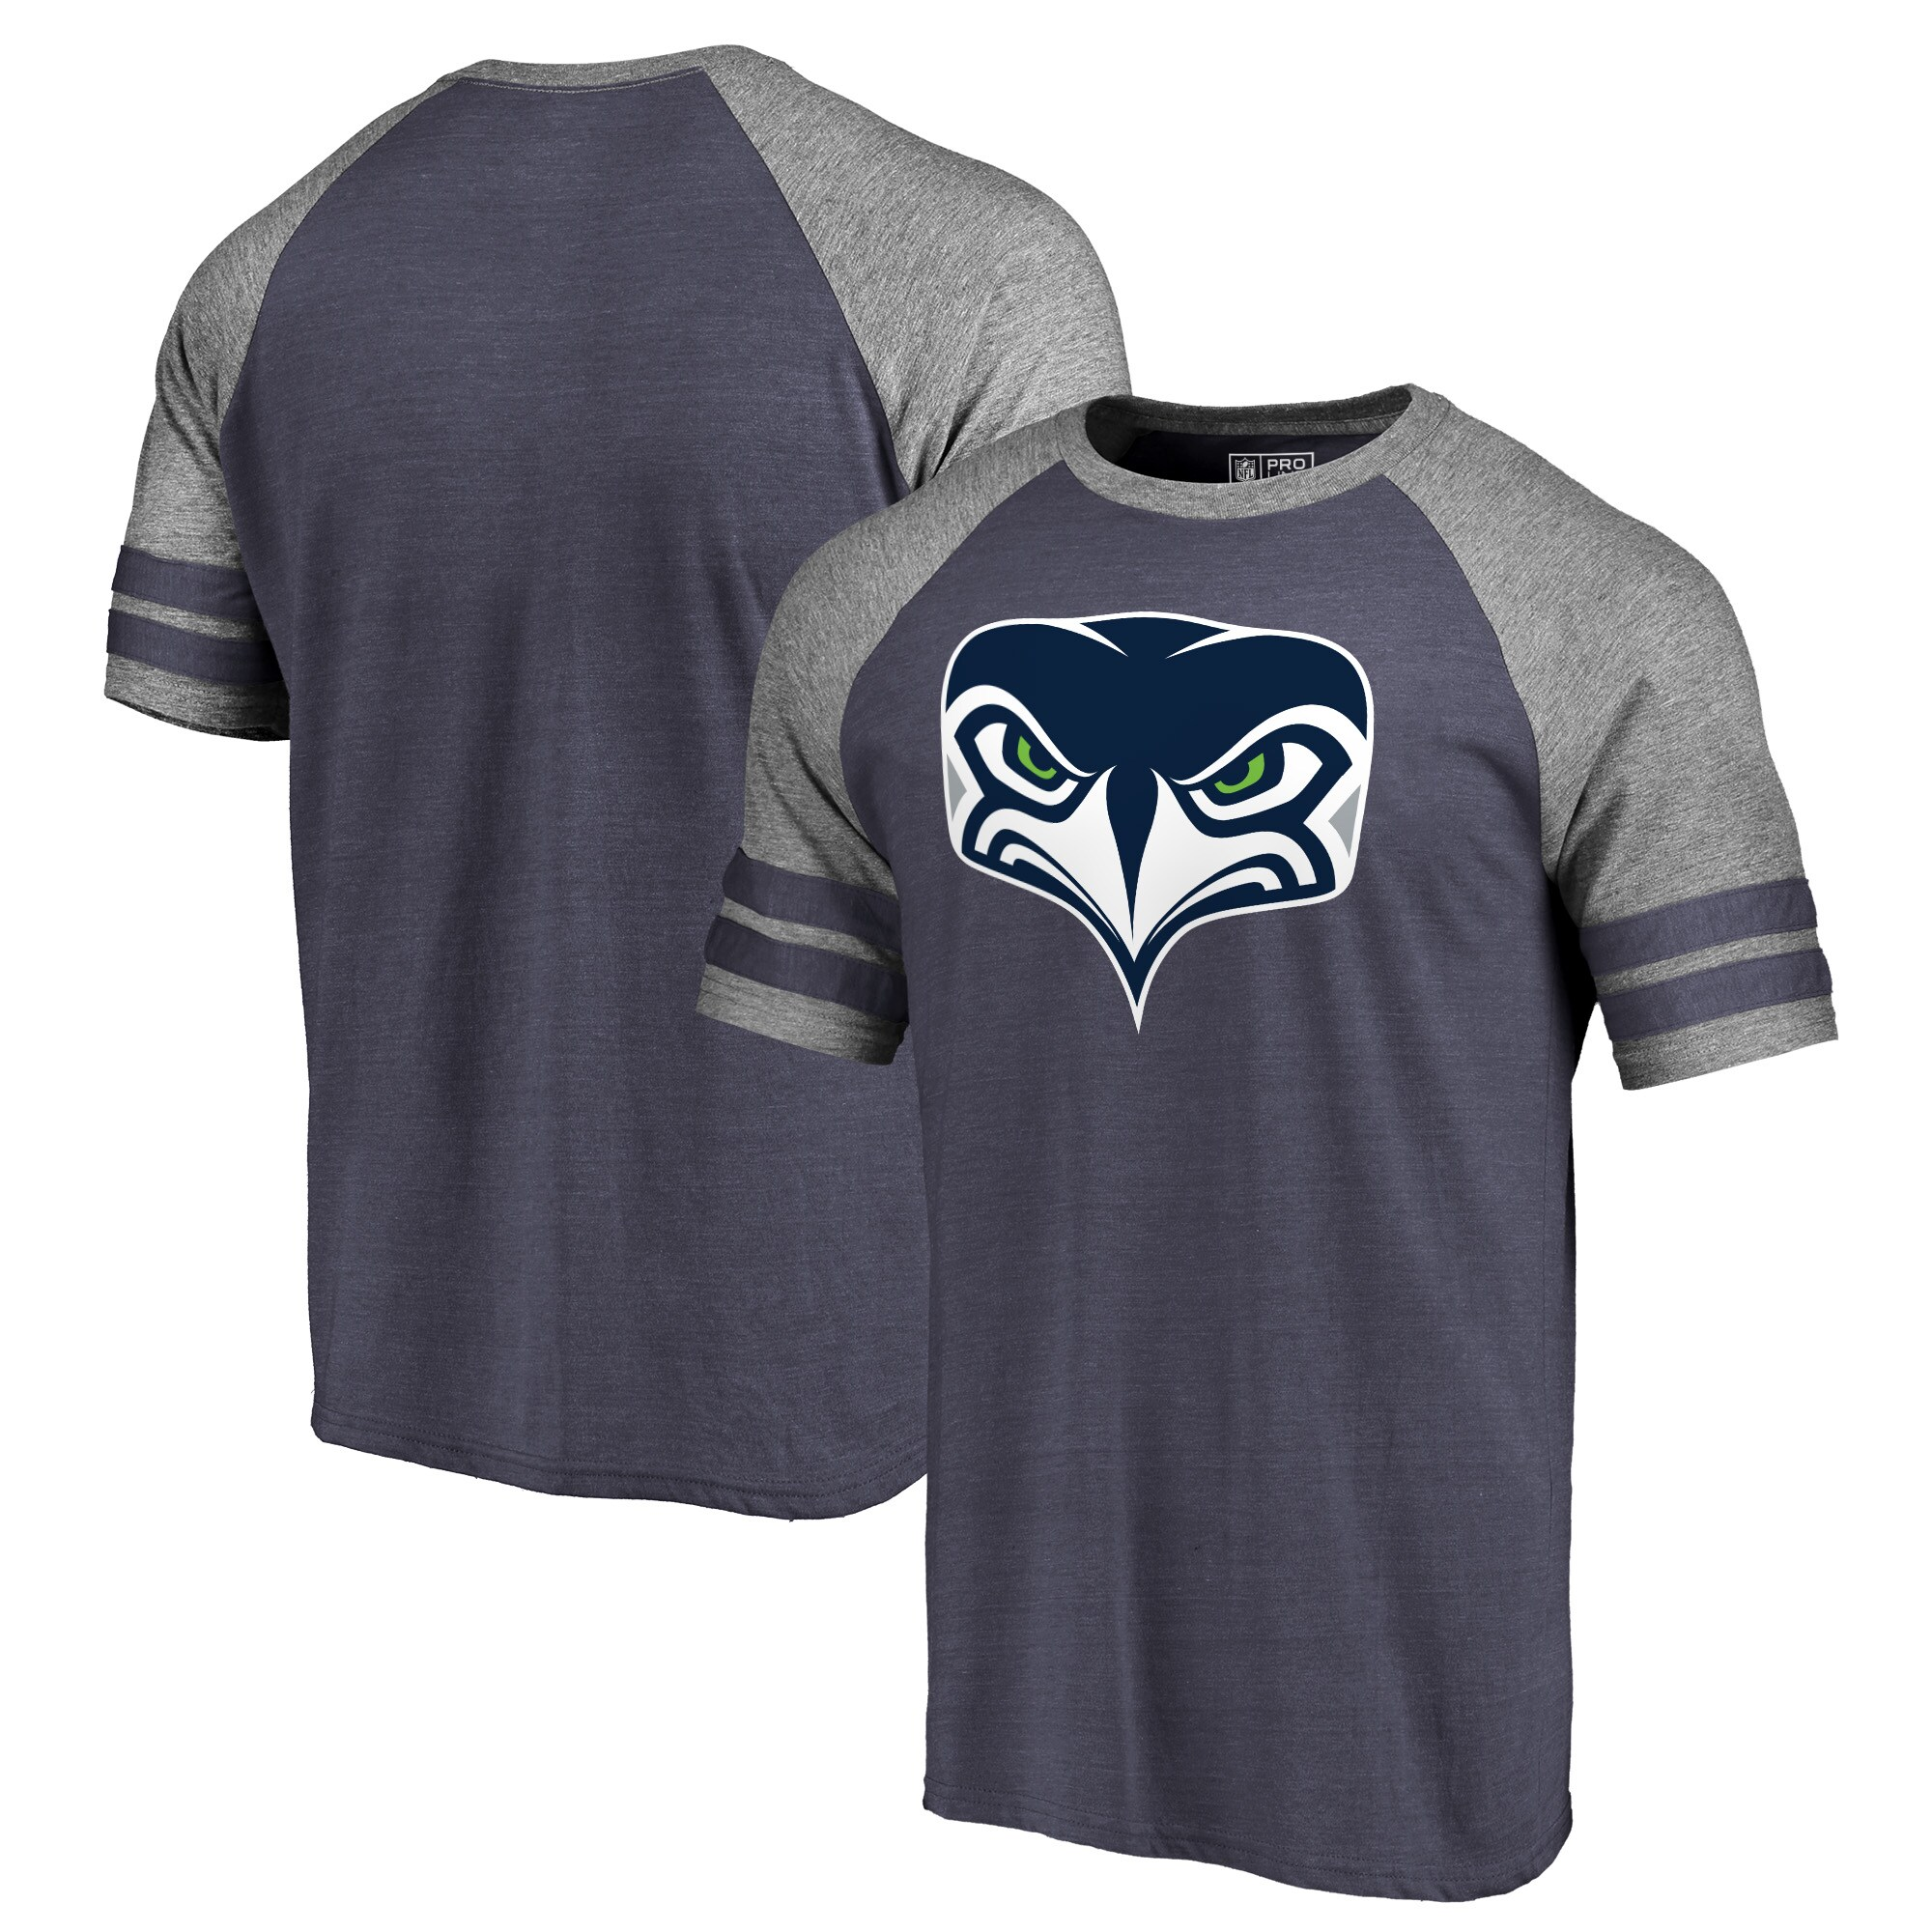 Seattle Seahawks NFL Pro Line by Fanatics Branded Alternate Team Logo Gear Tri-Blend Raglan T-Shirt - Navy